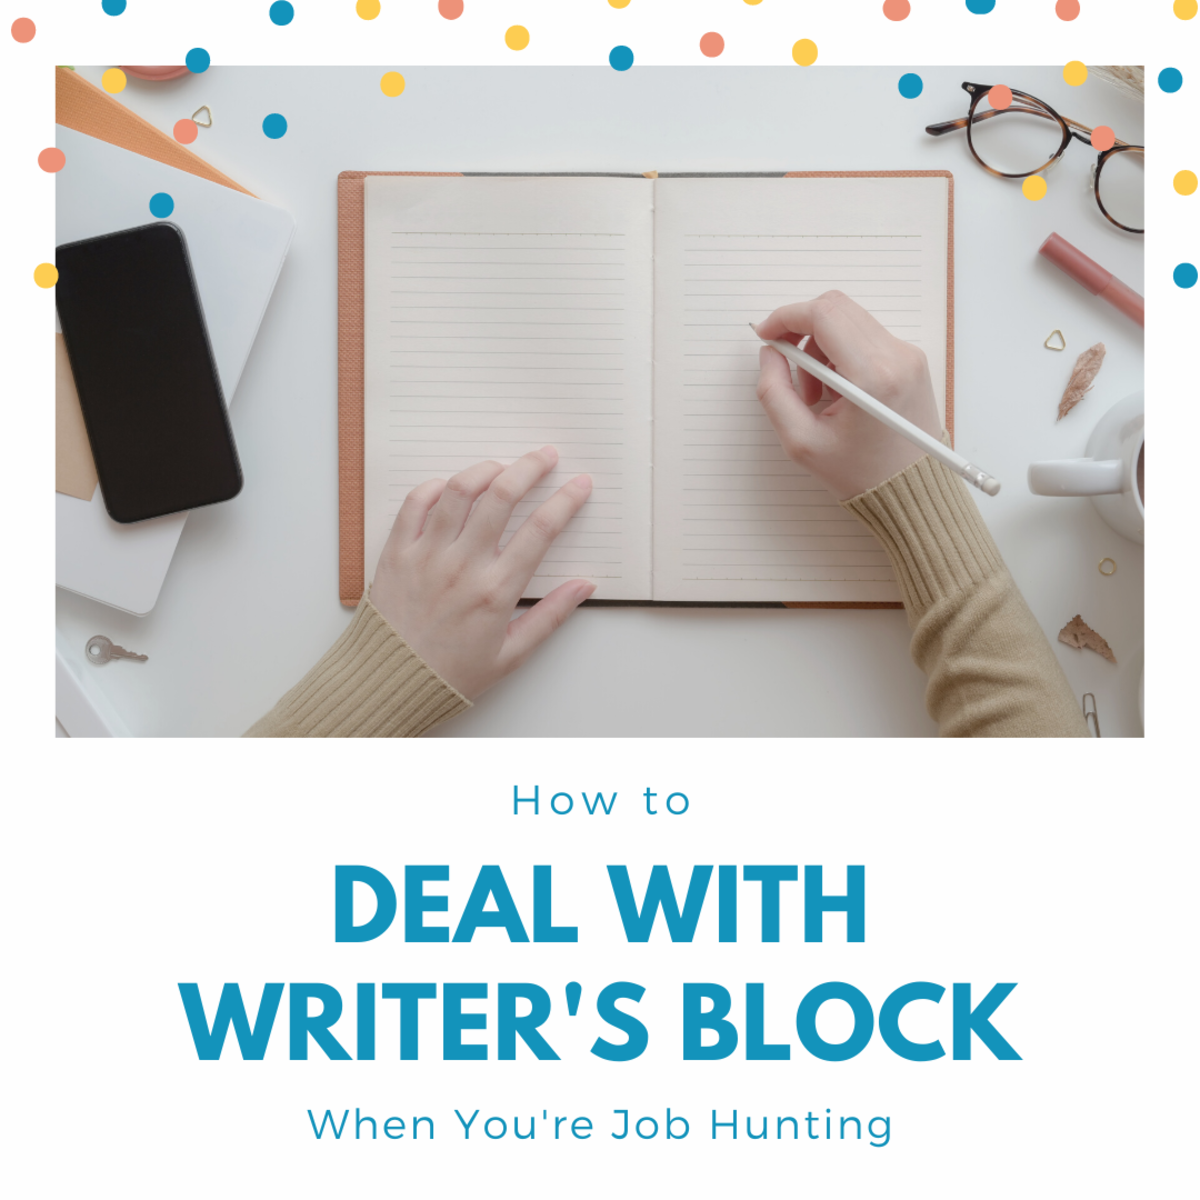 9 Ways to Deal With Writer's Block When You're Job Hunting